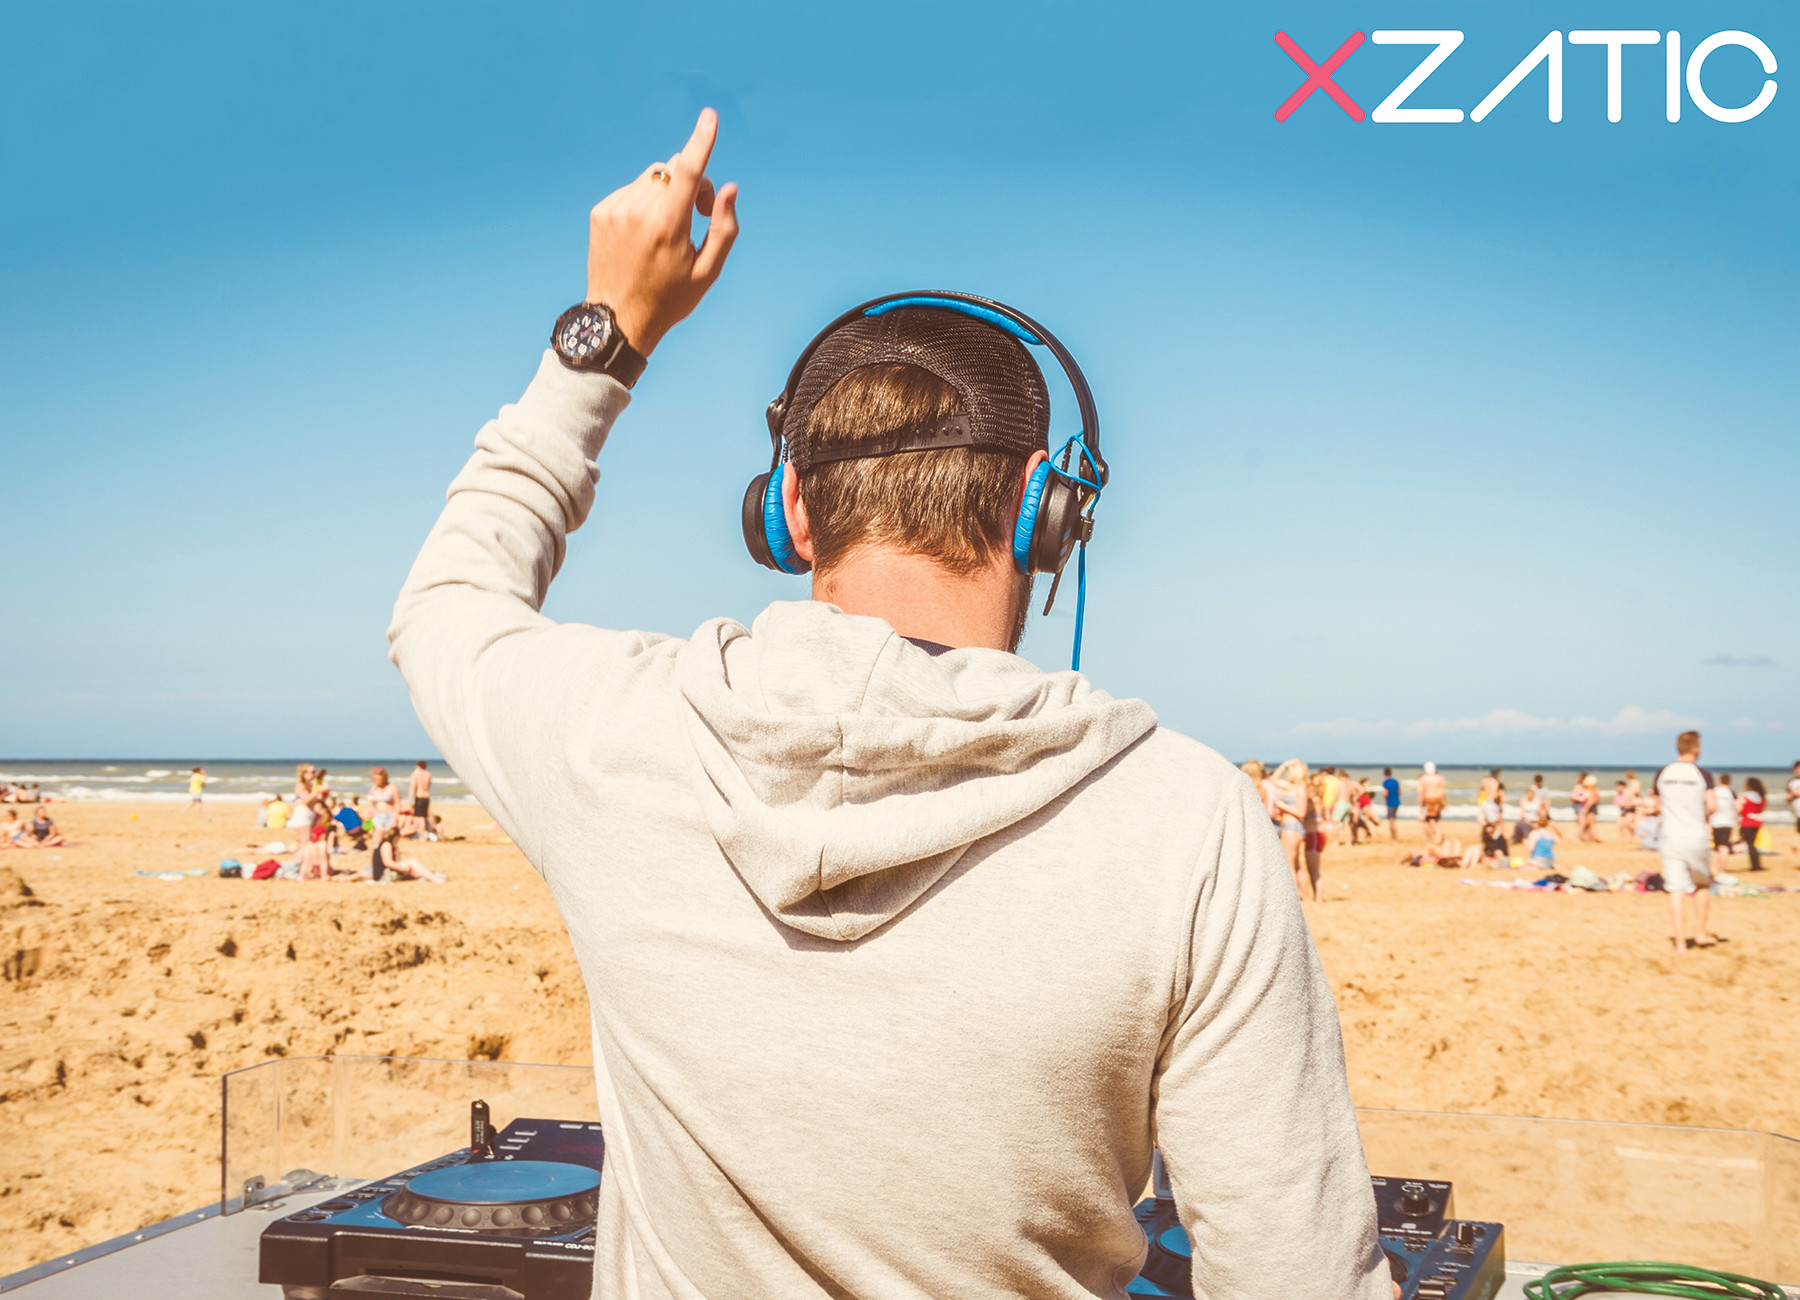 Summertime With Xzatic